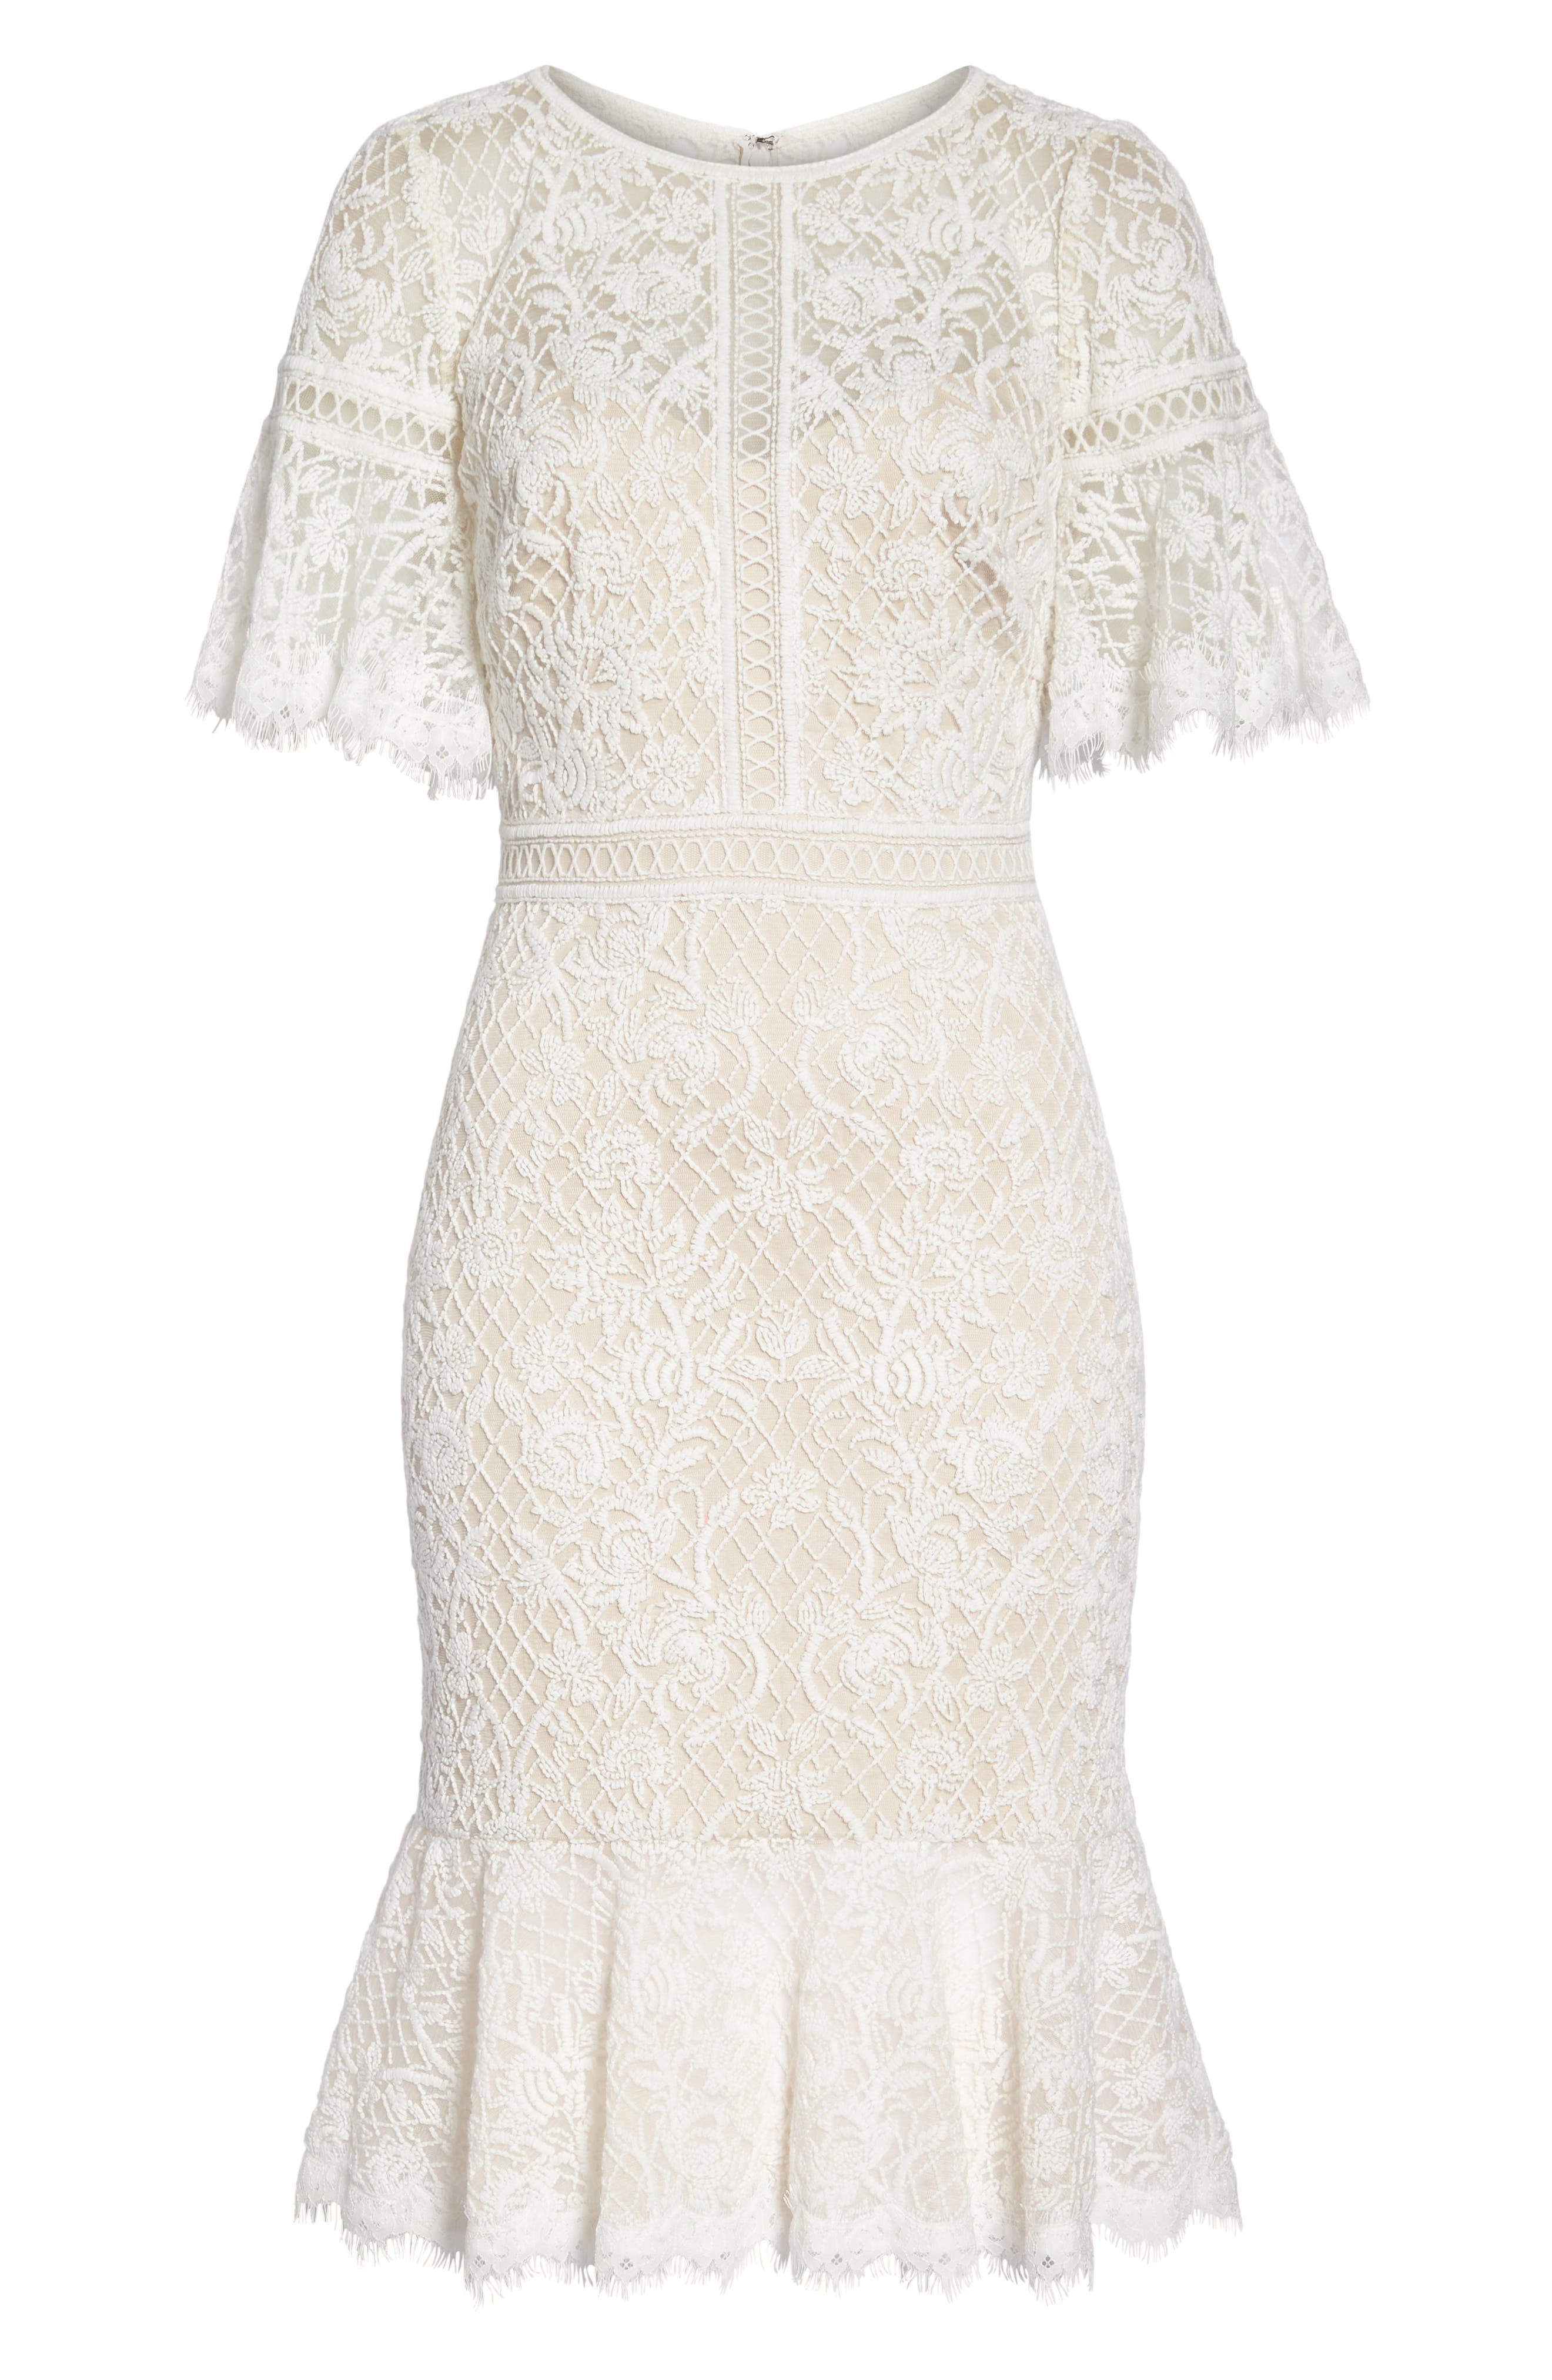 Embroidered Mesh Dress,                             Alternate thumbnail 7, color,                             IVORY/ NATURAL